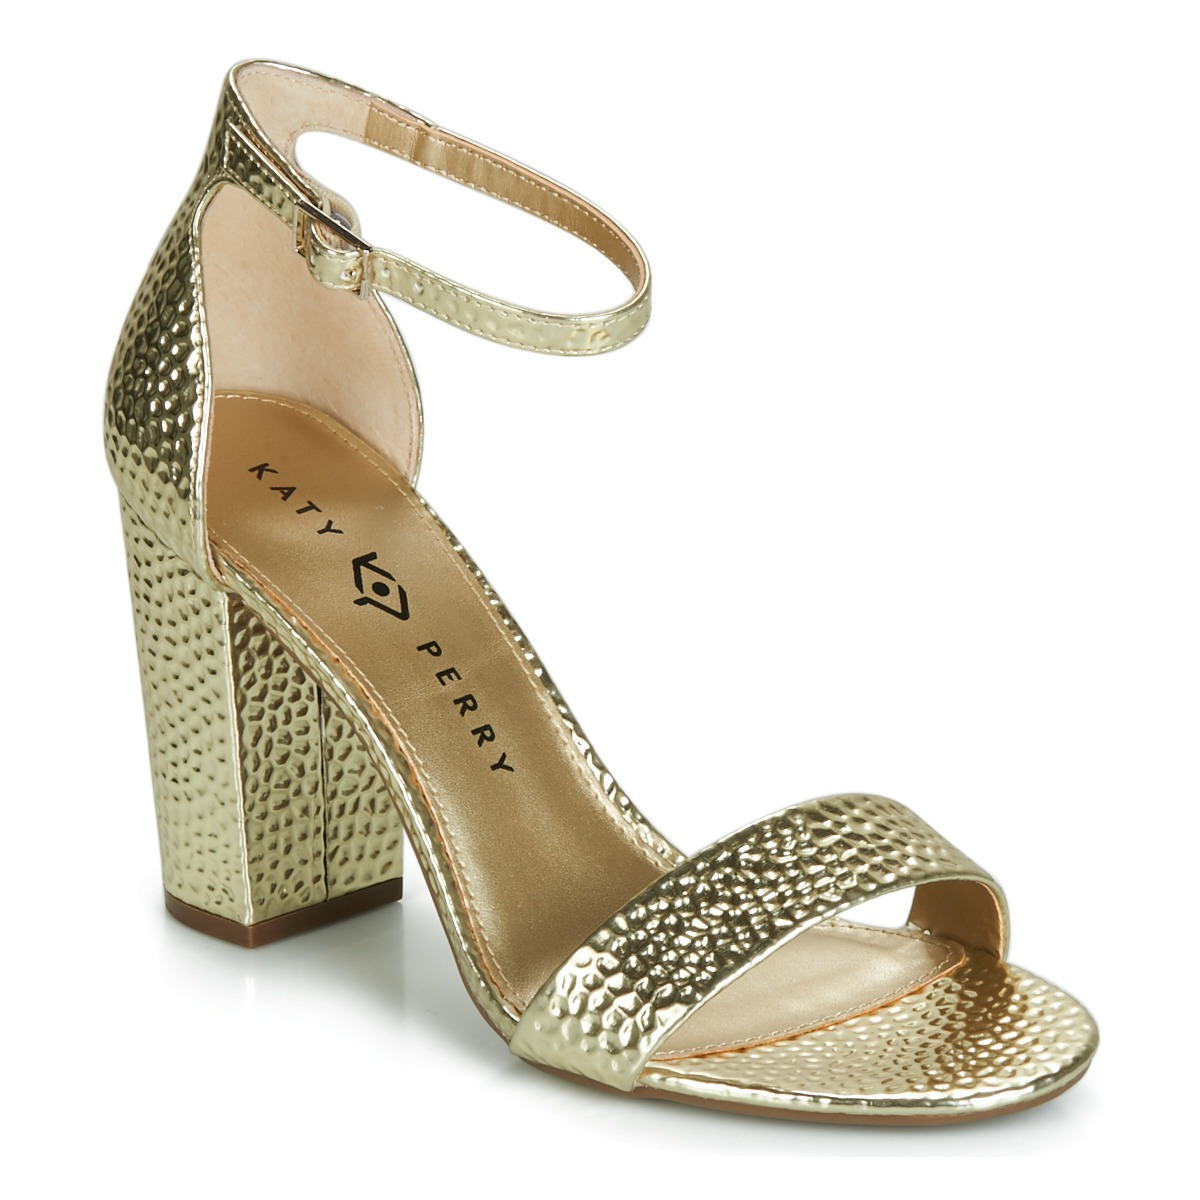 Sandaler Katy Perry  THE GOLDY